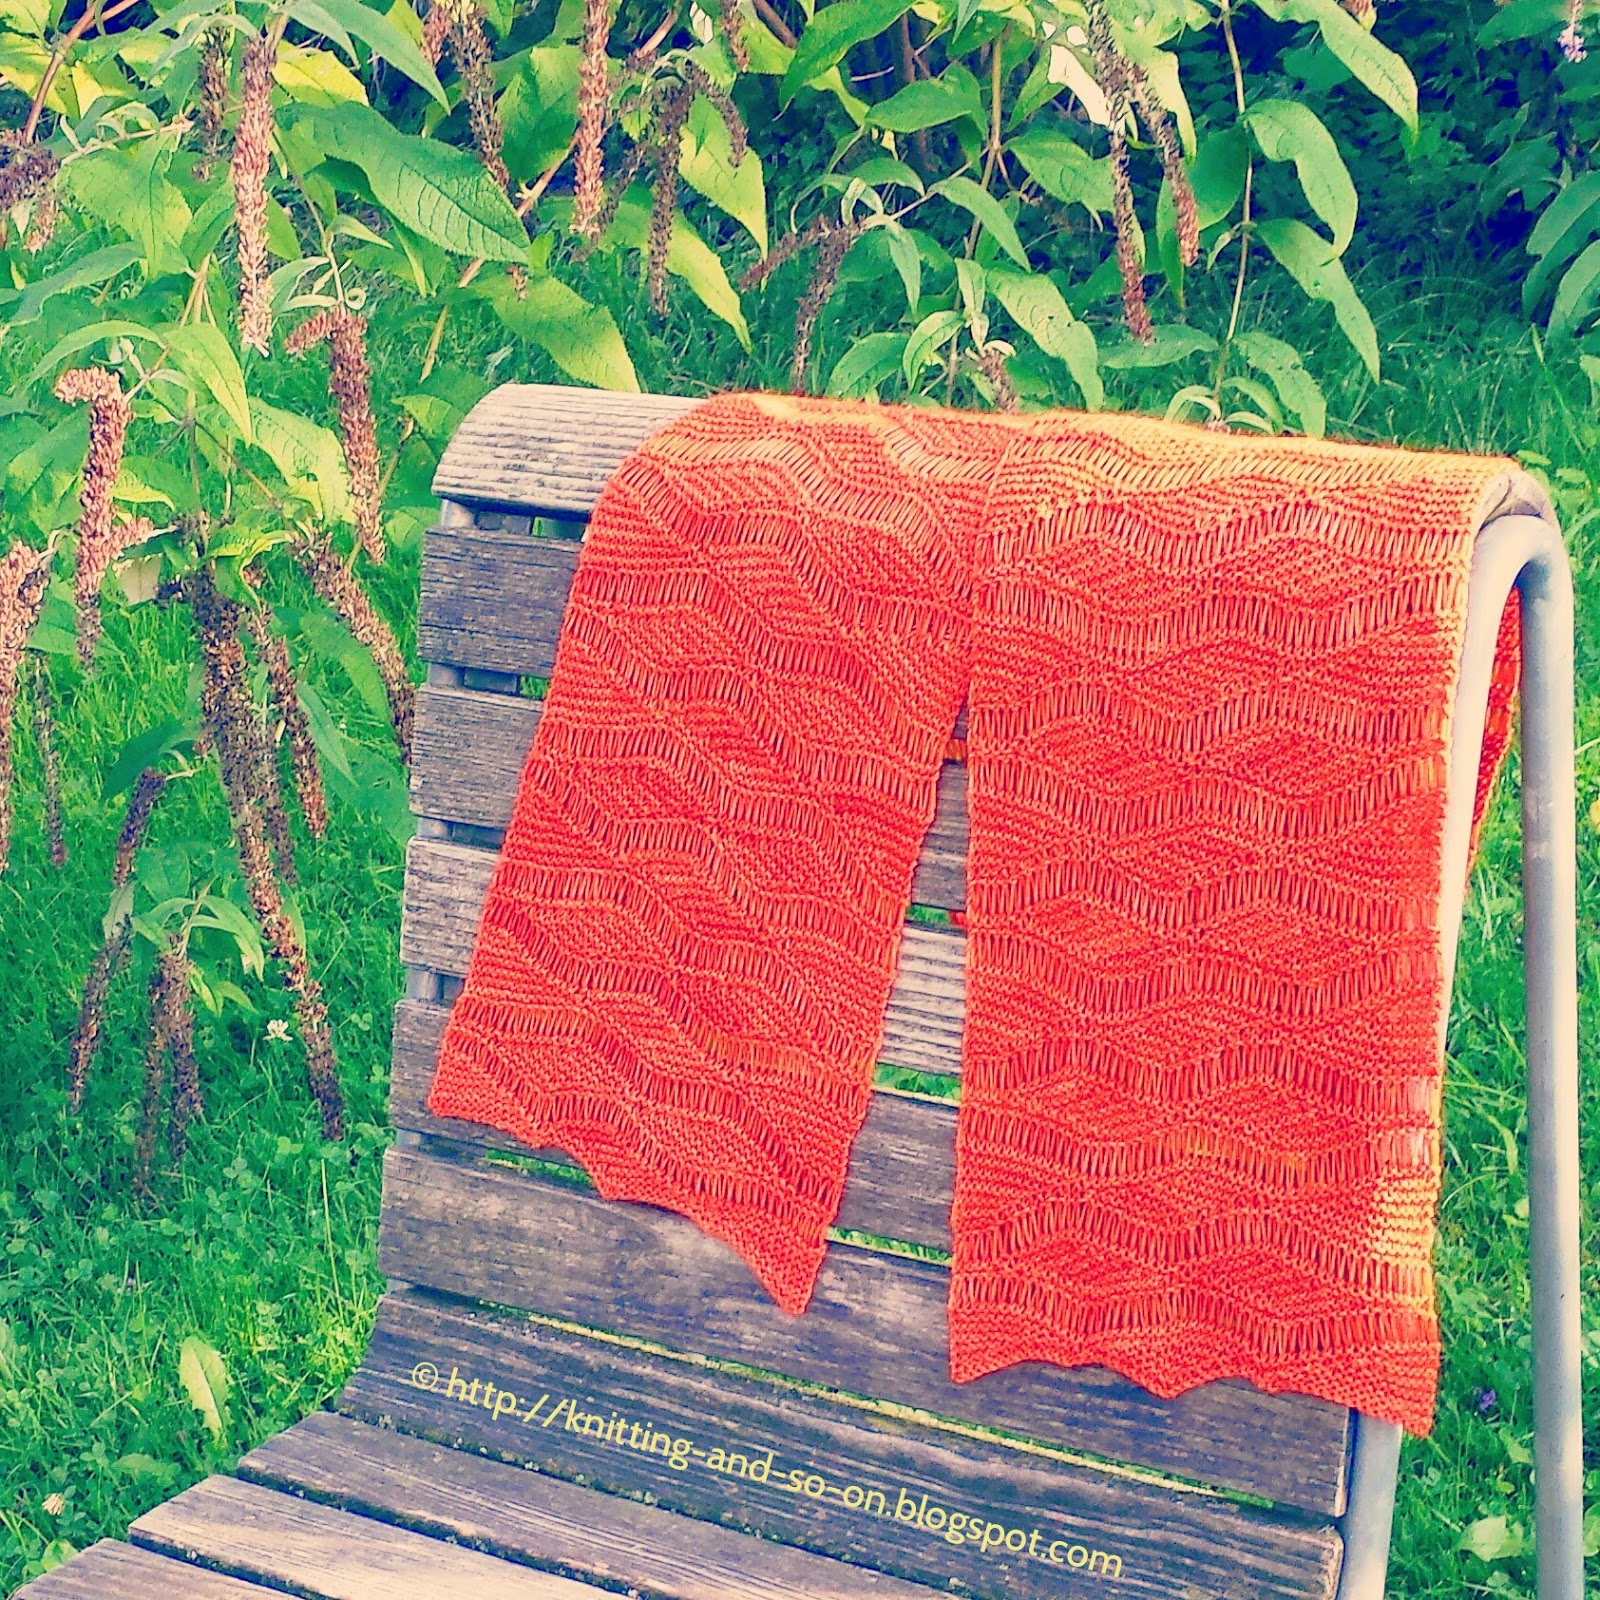 Free knitting pattern: Wellengang Short Row Scarf (http://knitting-and-so-on.blogspot.com)